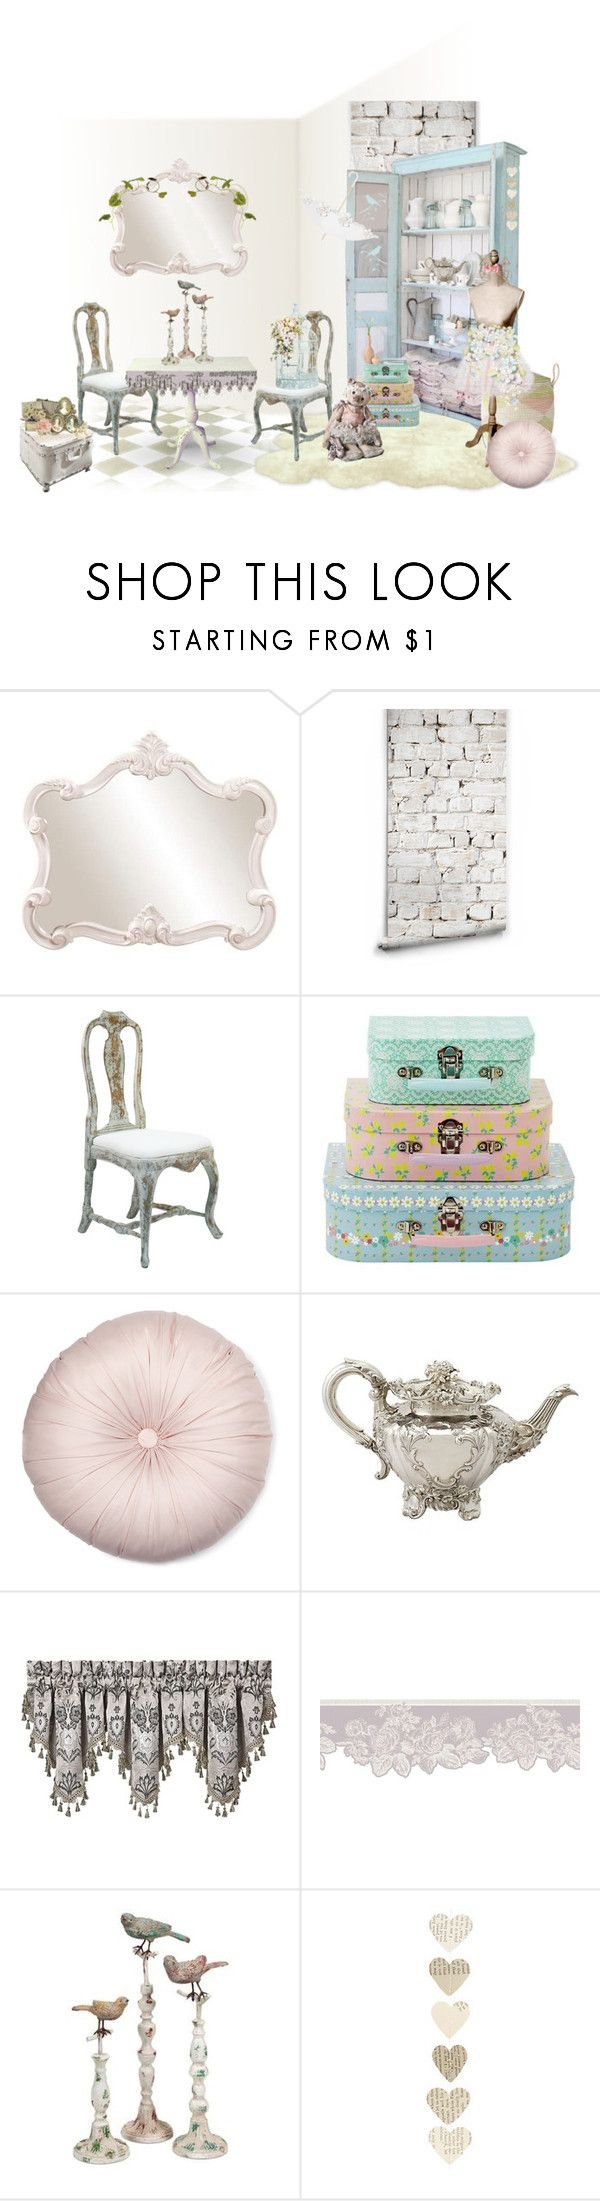 """""""Shabby Chic"""" by deborahparker ❤ liked on Polyvore featuring interior, interiors, interior design, home, home decor, interior decorating, Howard Elliott, Milton & King, J. Queen New York and IMAX Corporation"""